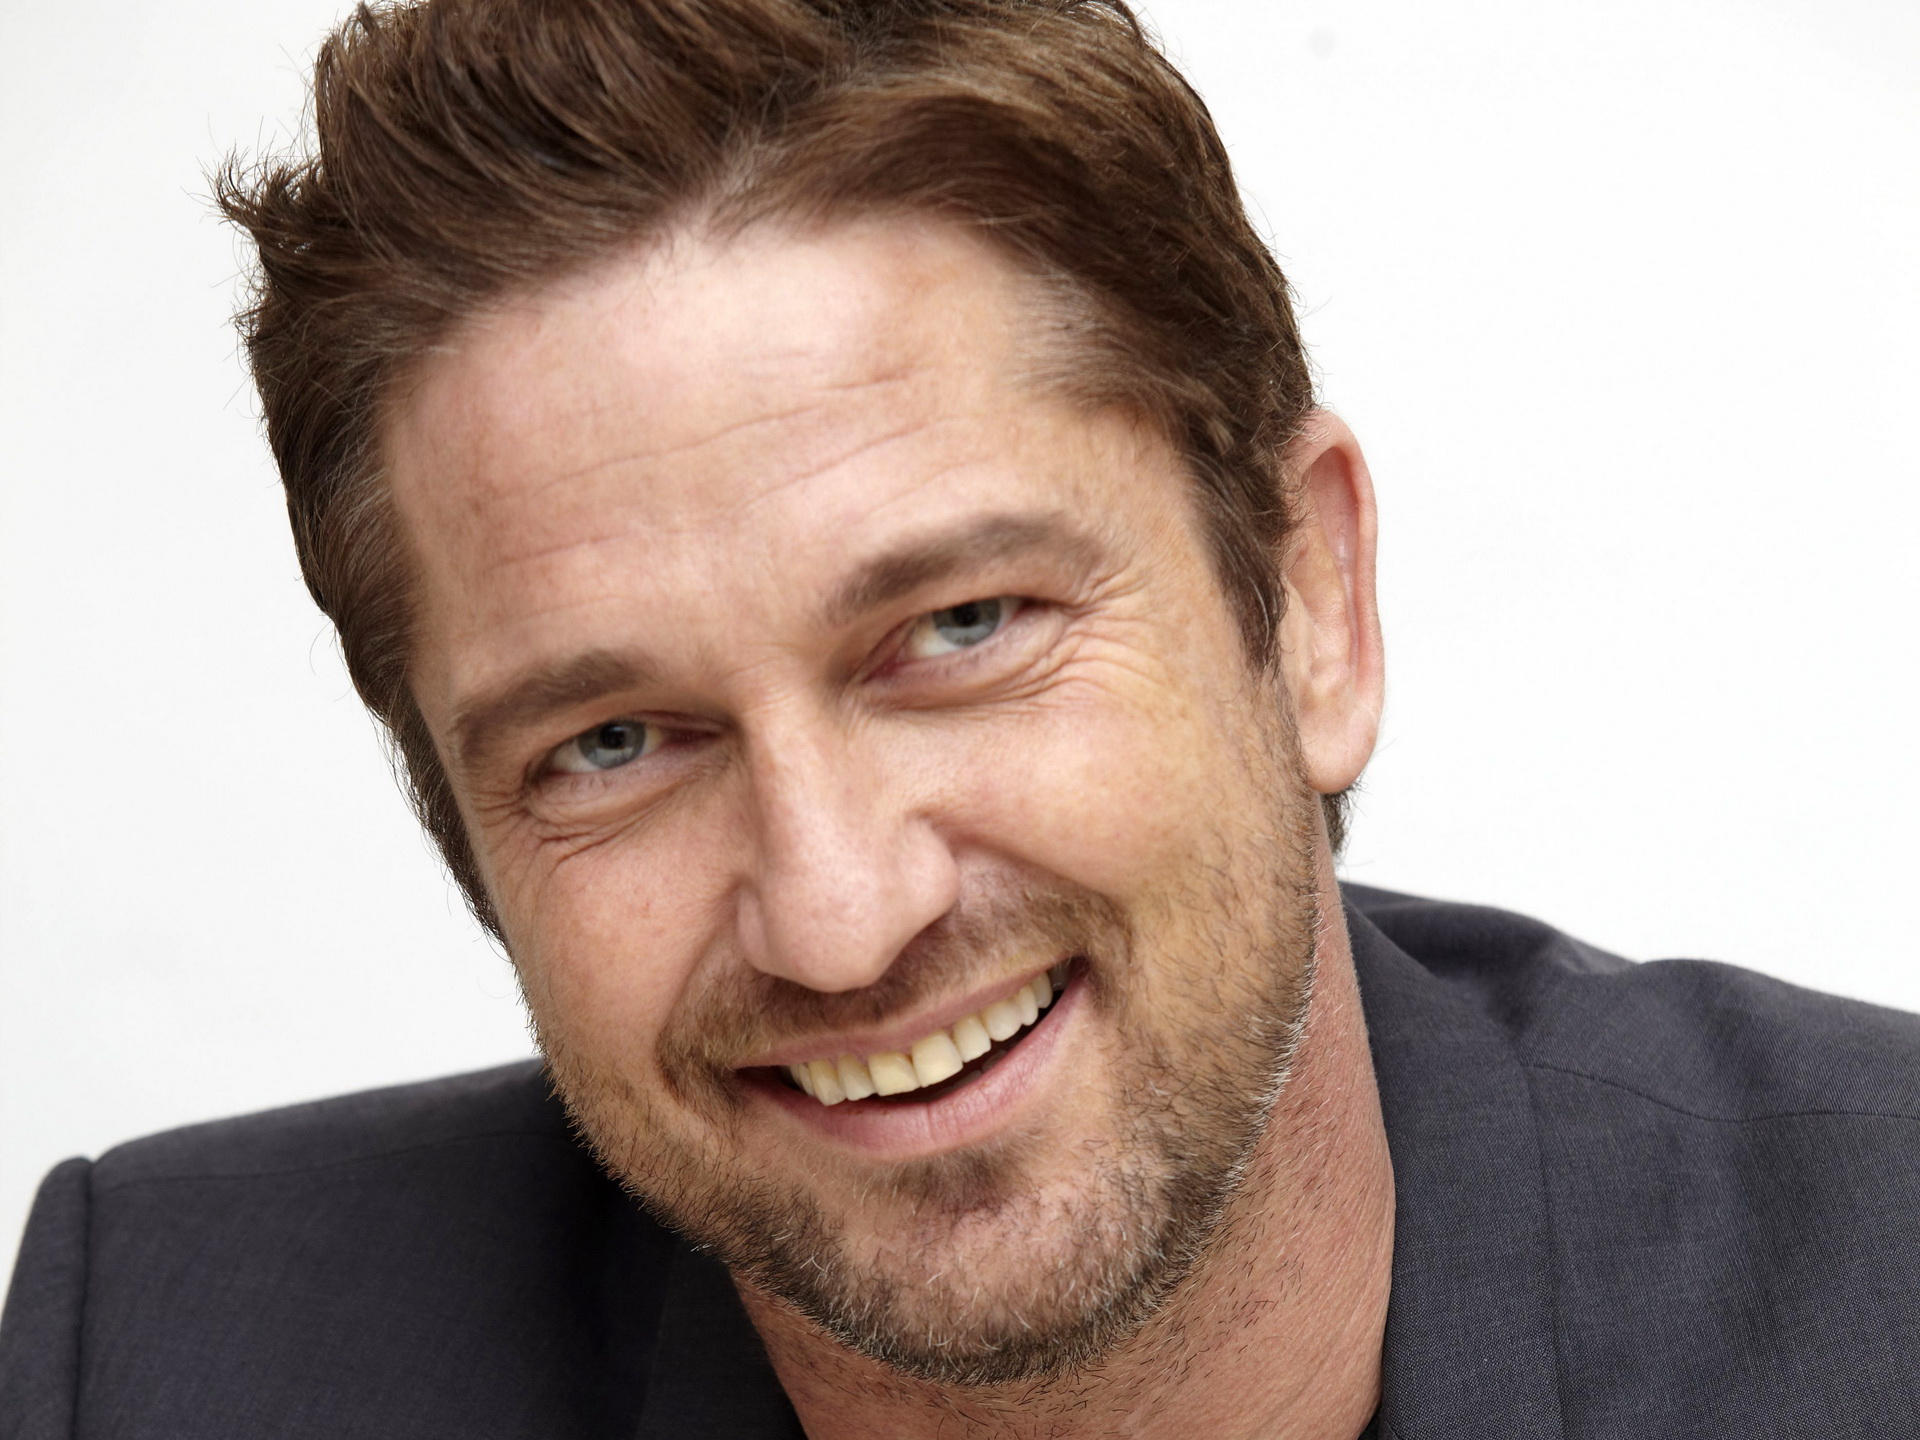 Gerard Butler Wallpapers High Resolution And Quality Download